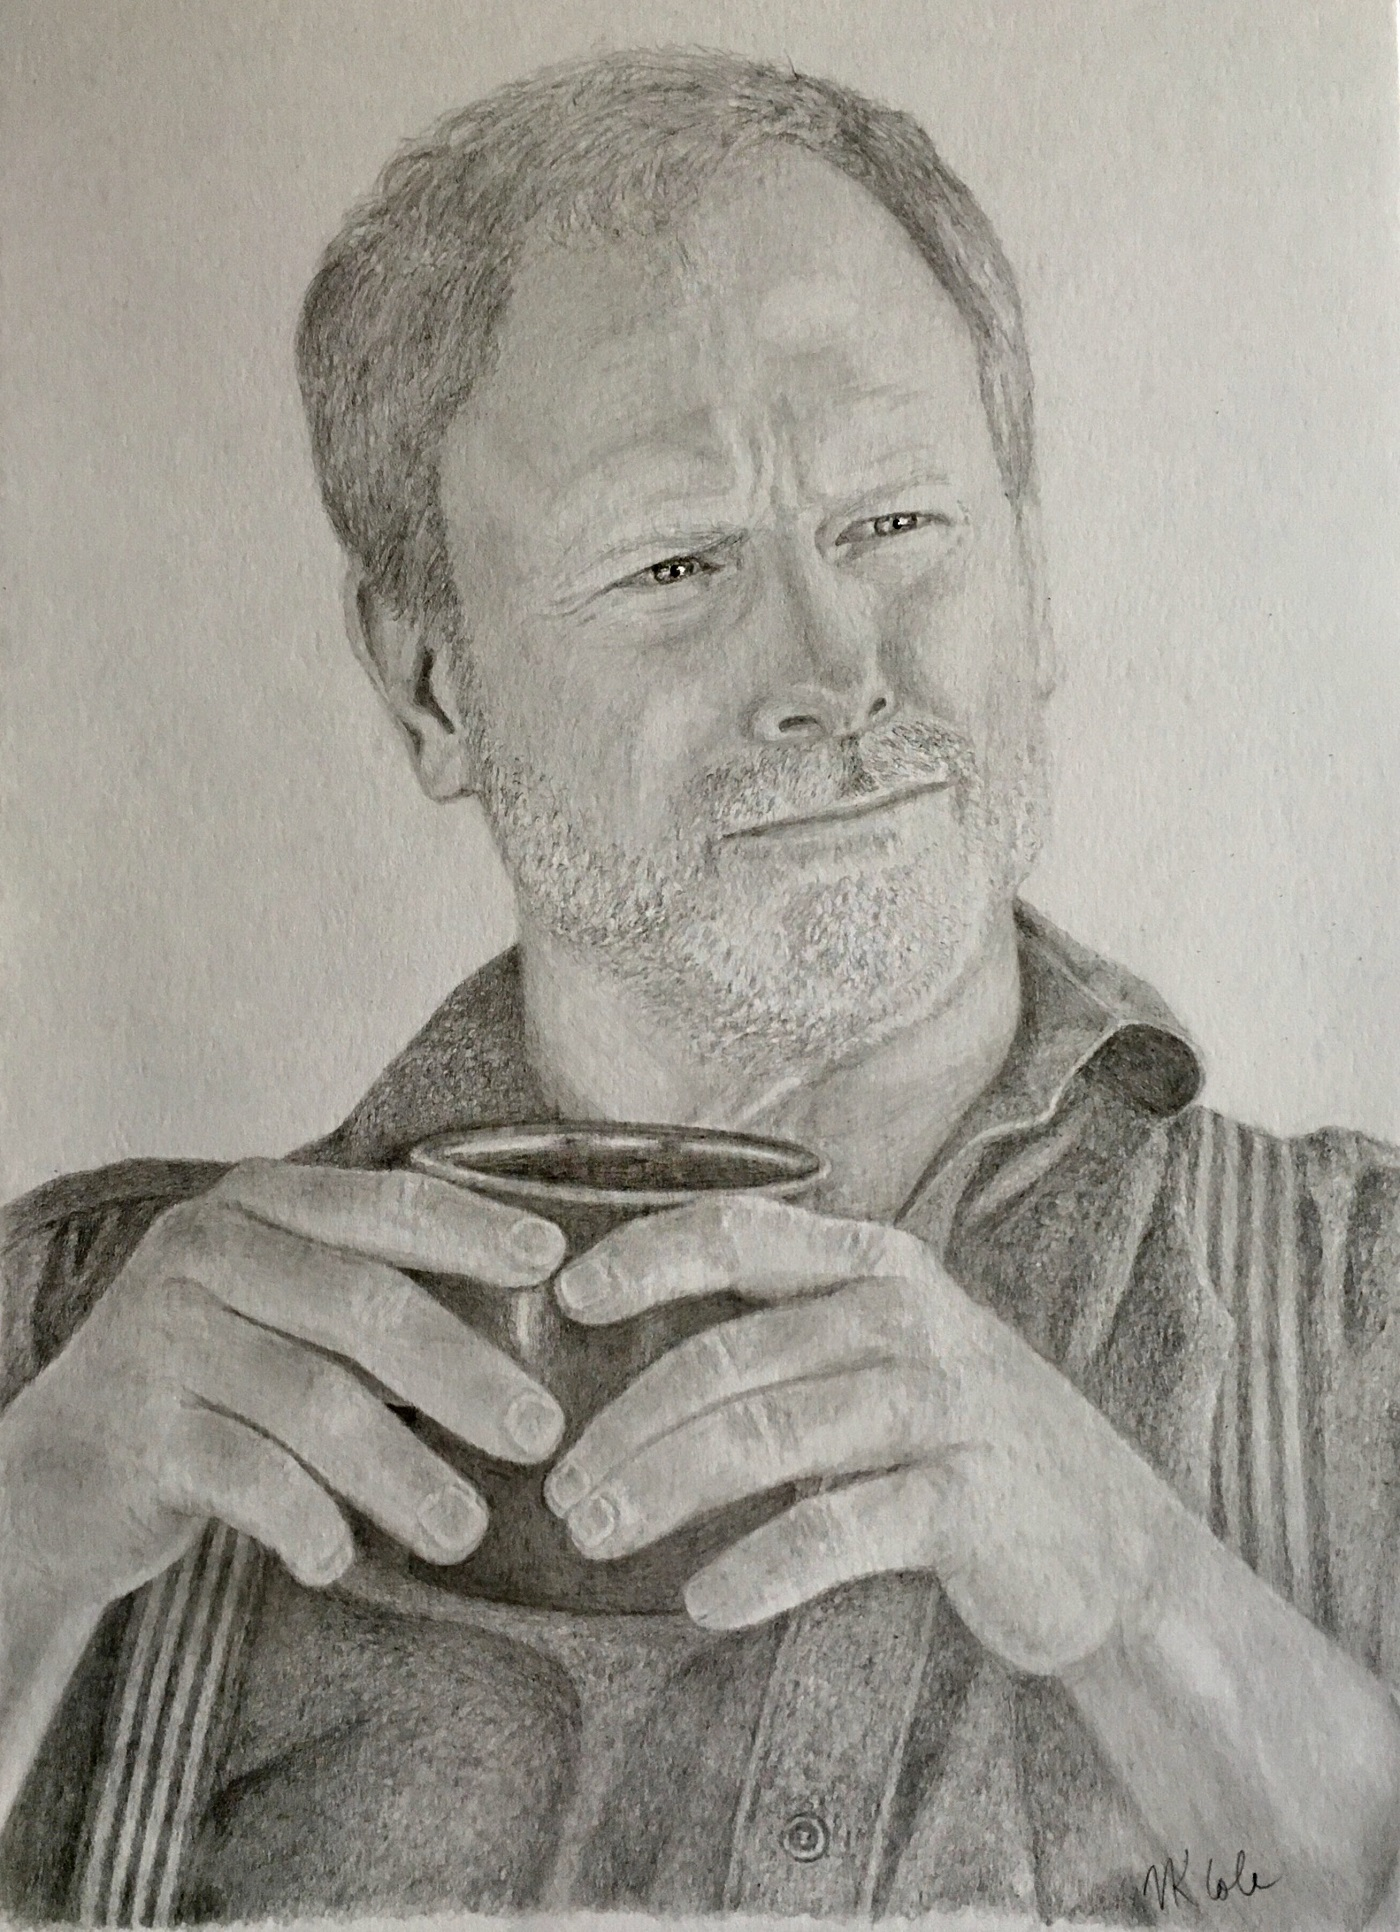 My portrait of Louis Herthum as Peter Abernathy